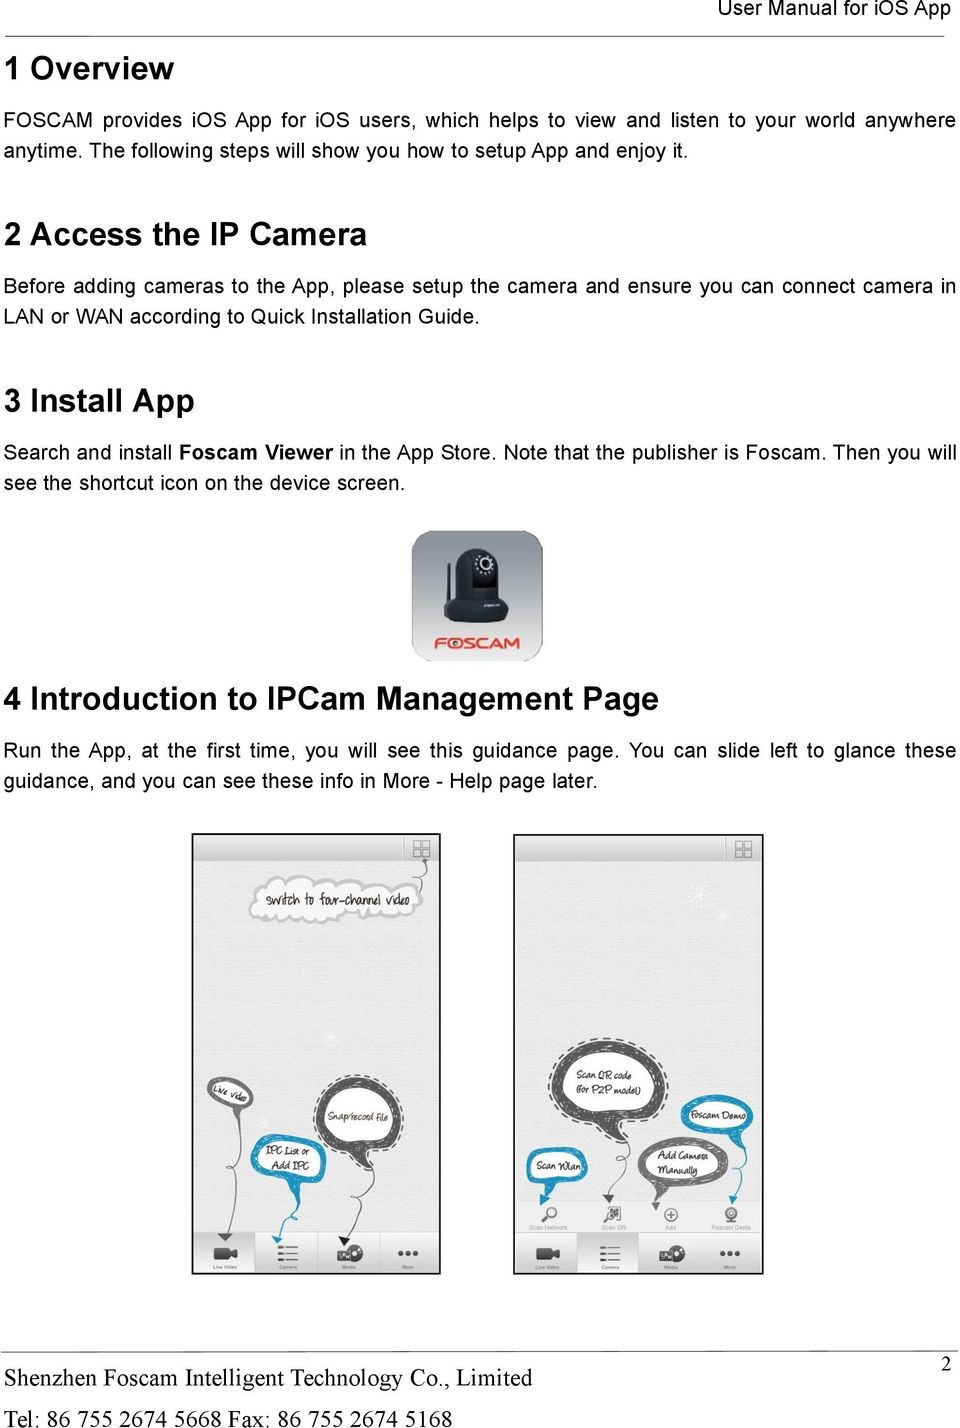 3 Install App Search and install Foscam Viewer in the App Store. Note that the publisher is Foscam. Then you will see the shortcut icon on the device screen.